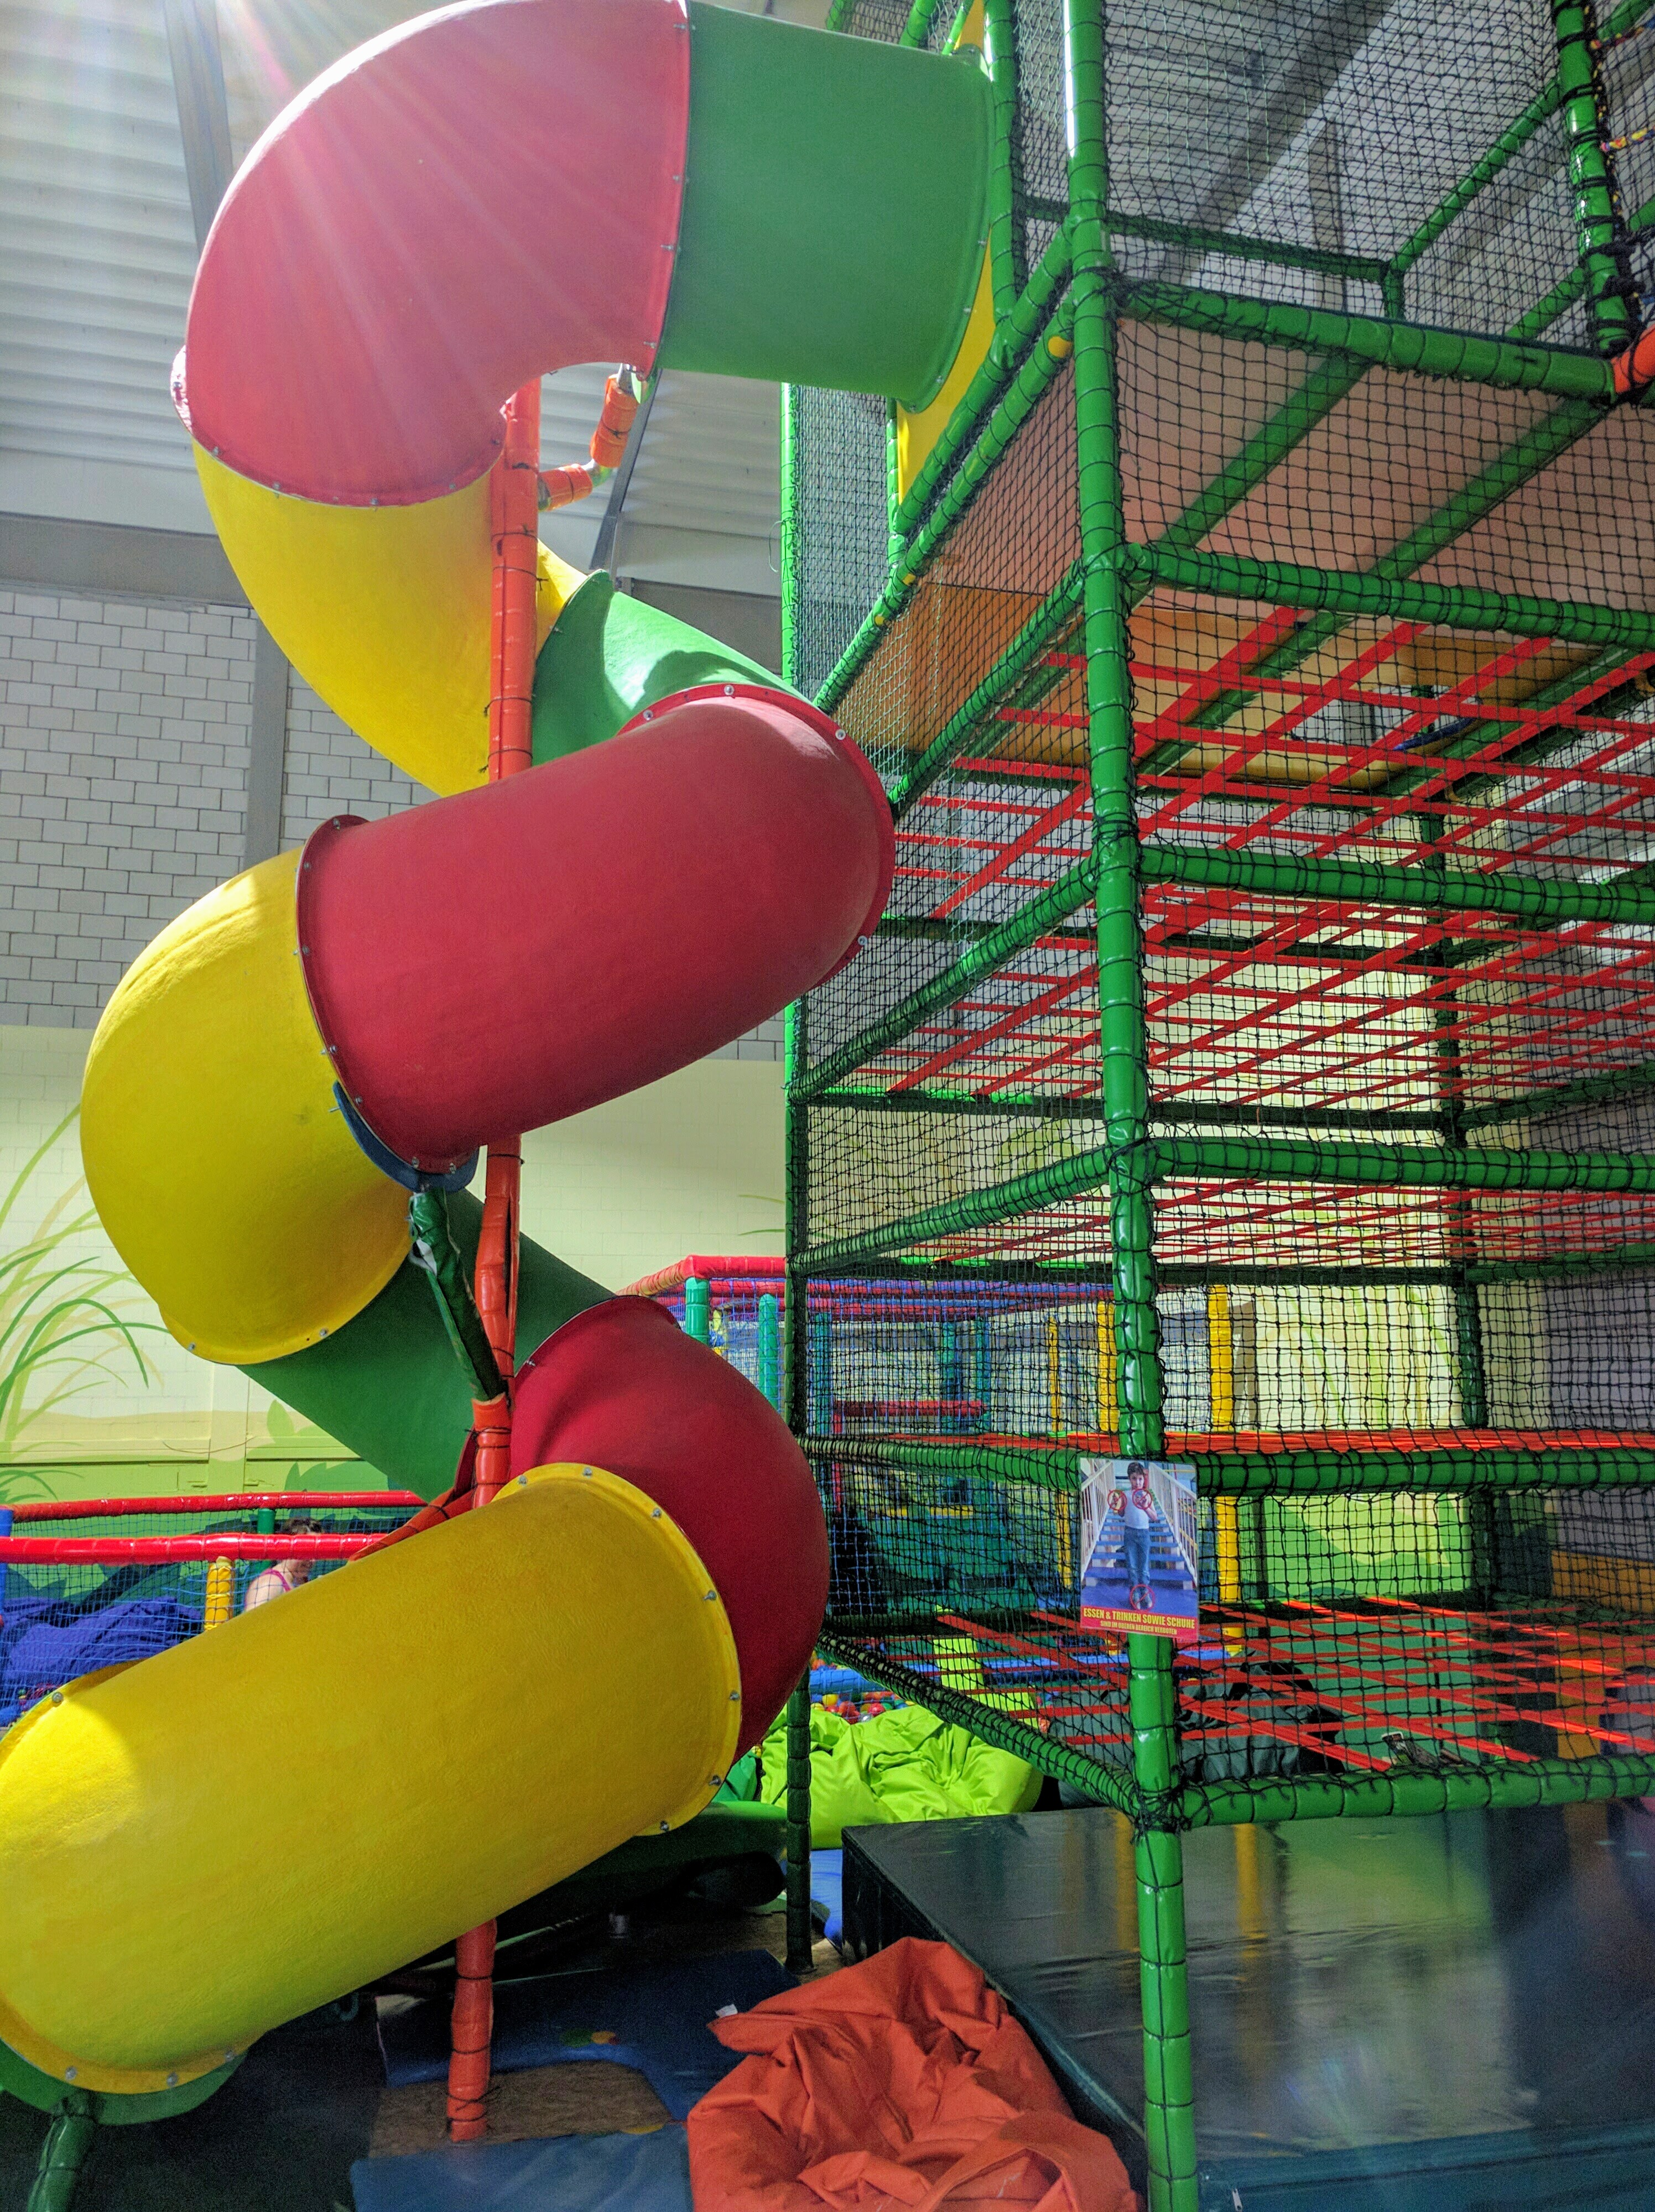 Top 10 Rainy Day Activities with Kids near Zurich